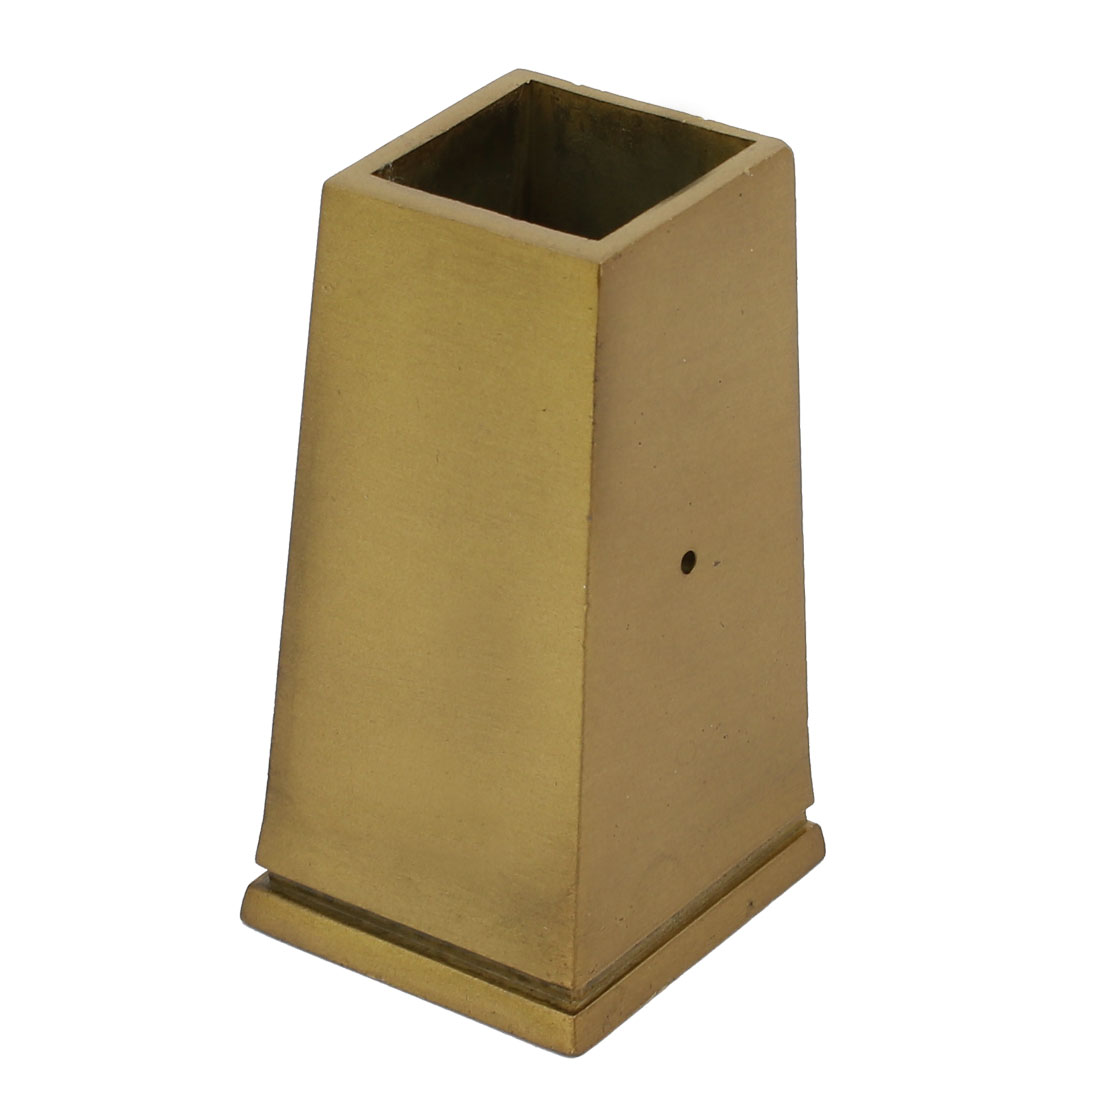 brass and metal furniture. Unique Bargains Household Metal Furniture Table Legs Foot Protector Cover Holder Brass Tone And R